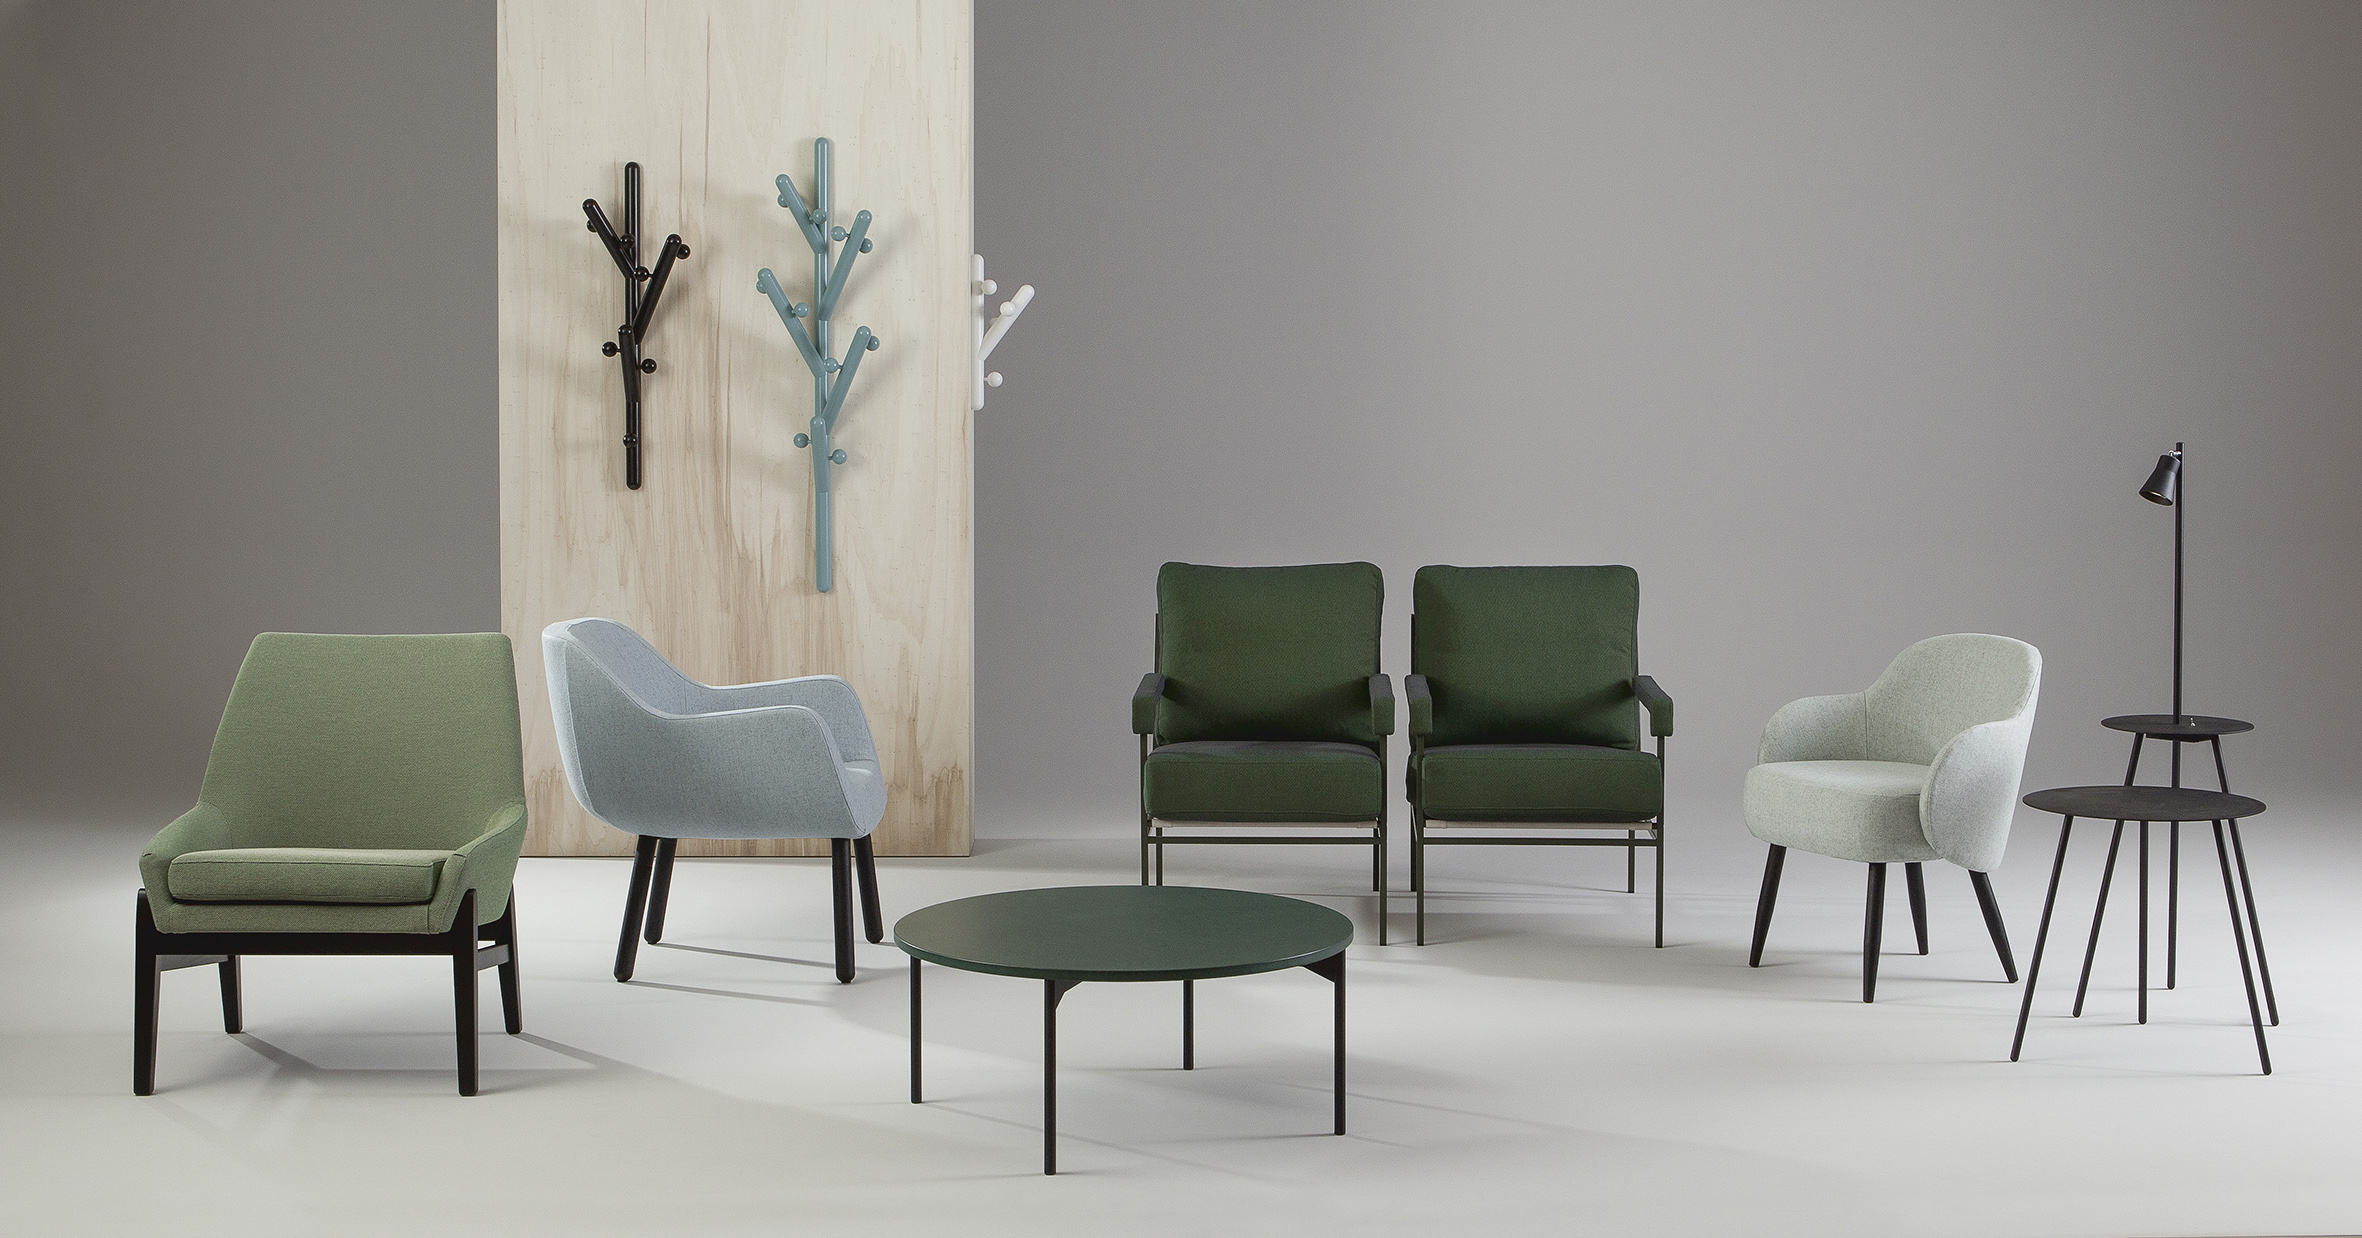 Scandinavian australian furniture designers interstudio for Designer garden furniture